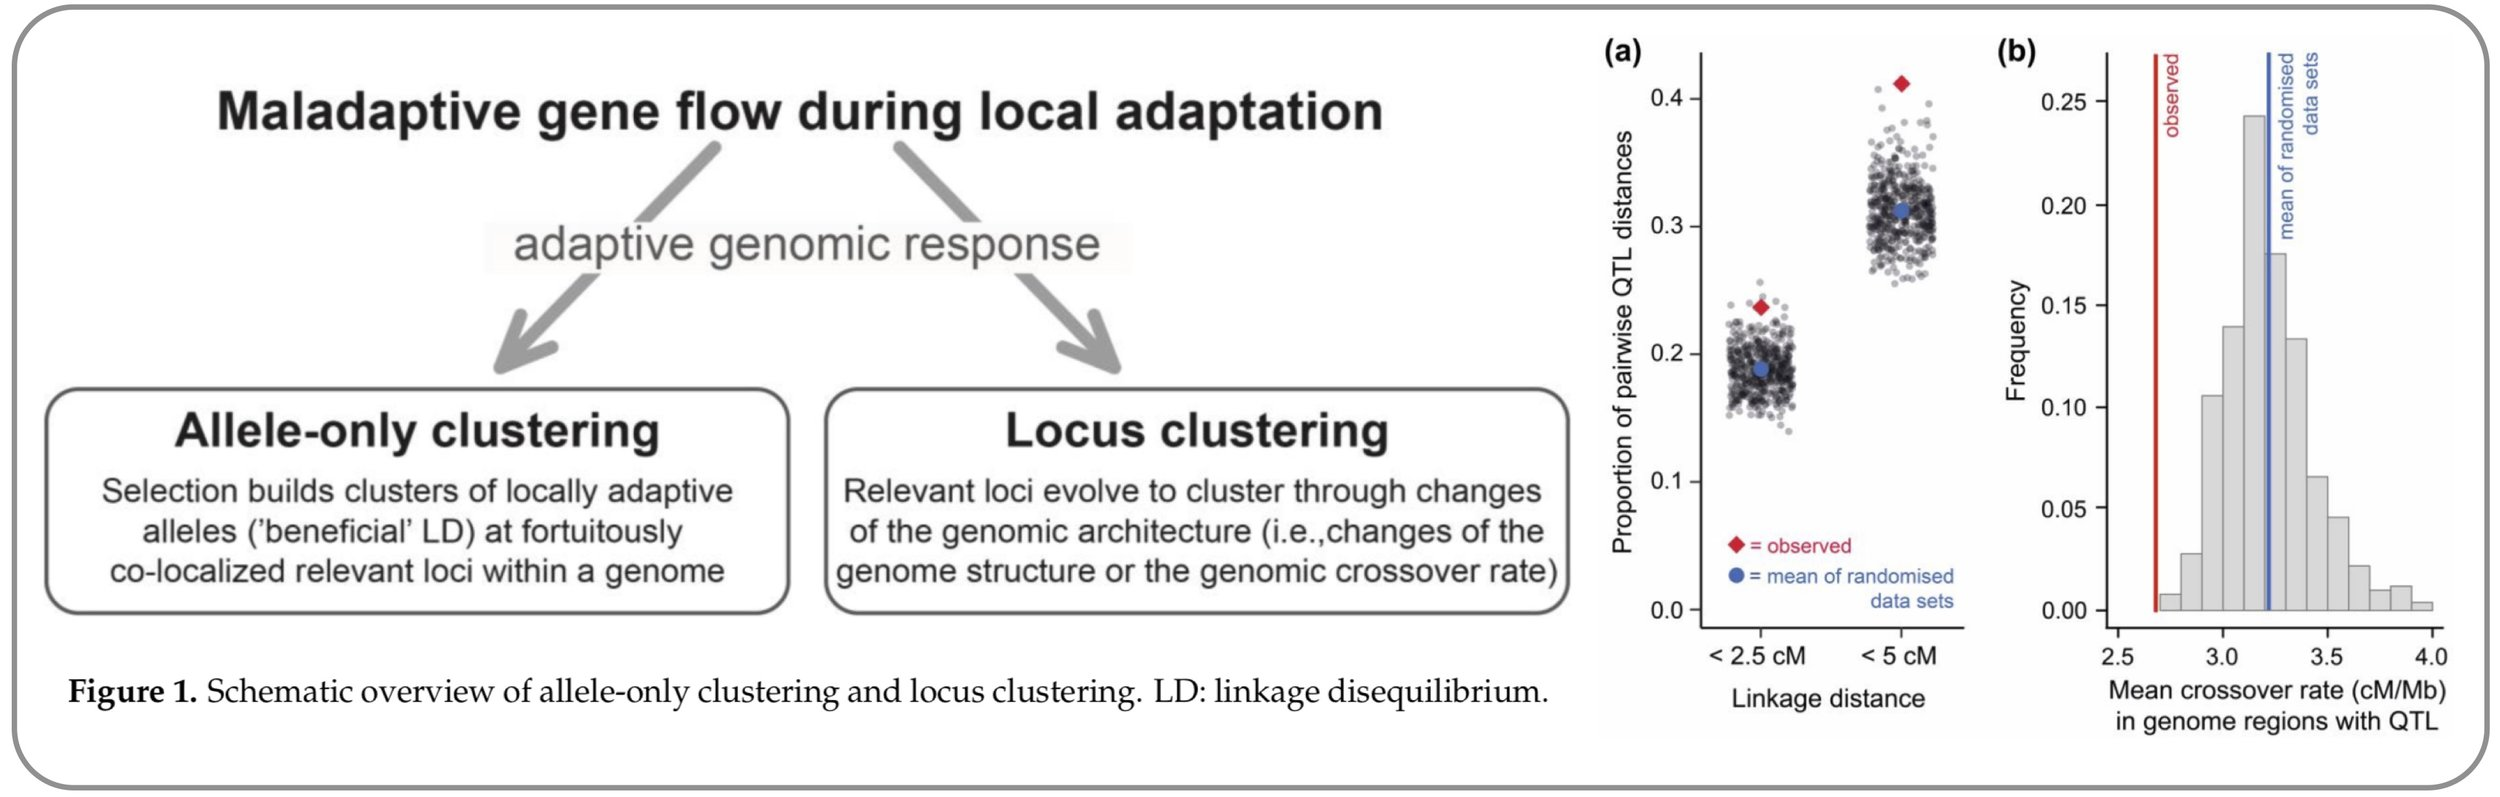 Do adaptive loci cluster within a genome to better resist gene flow?  In this paper, I summarize  ideas of why, how and where in a genome adaptive loci should become clustered  when local adaptation occurs in the presence of maladaptive gene flow. I argue that although there are many convincing theoretical arguments, we have a poor empirical understanding about where in a genome the adaptive loci are actually located. Even though genome regions of low recombination appear as promising hotspots for adaptive loci to cluster, observed patterns of 'clustered loci' are often likely to be explained by  detection biases of popular empirical approaches  (e.g.,  population genome scans  and  QTL mapping) . I use hundreds of previously published QTLs from threespine stickleback fish to demonstrate this bias, and then suggest promising future avenues of how to get around these problems  (   Roesti 2018   )